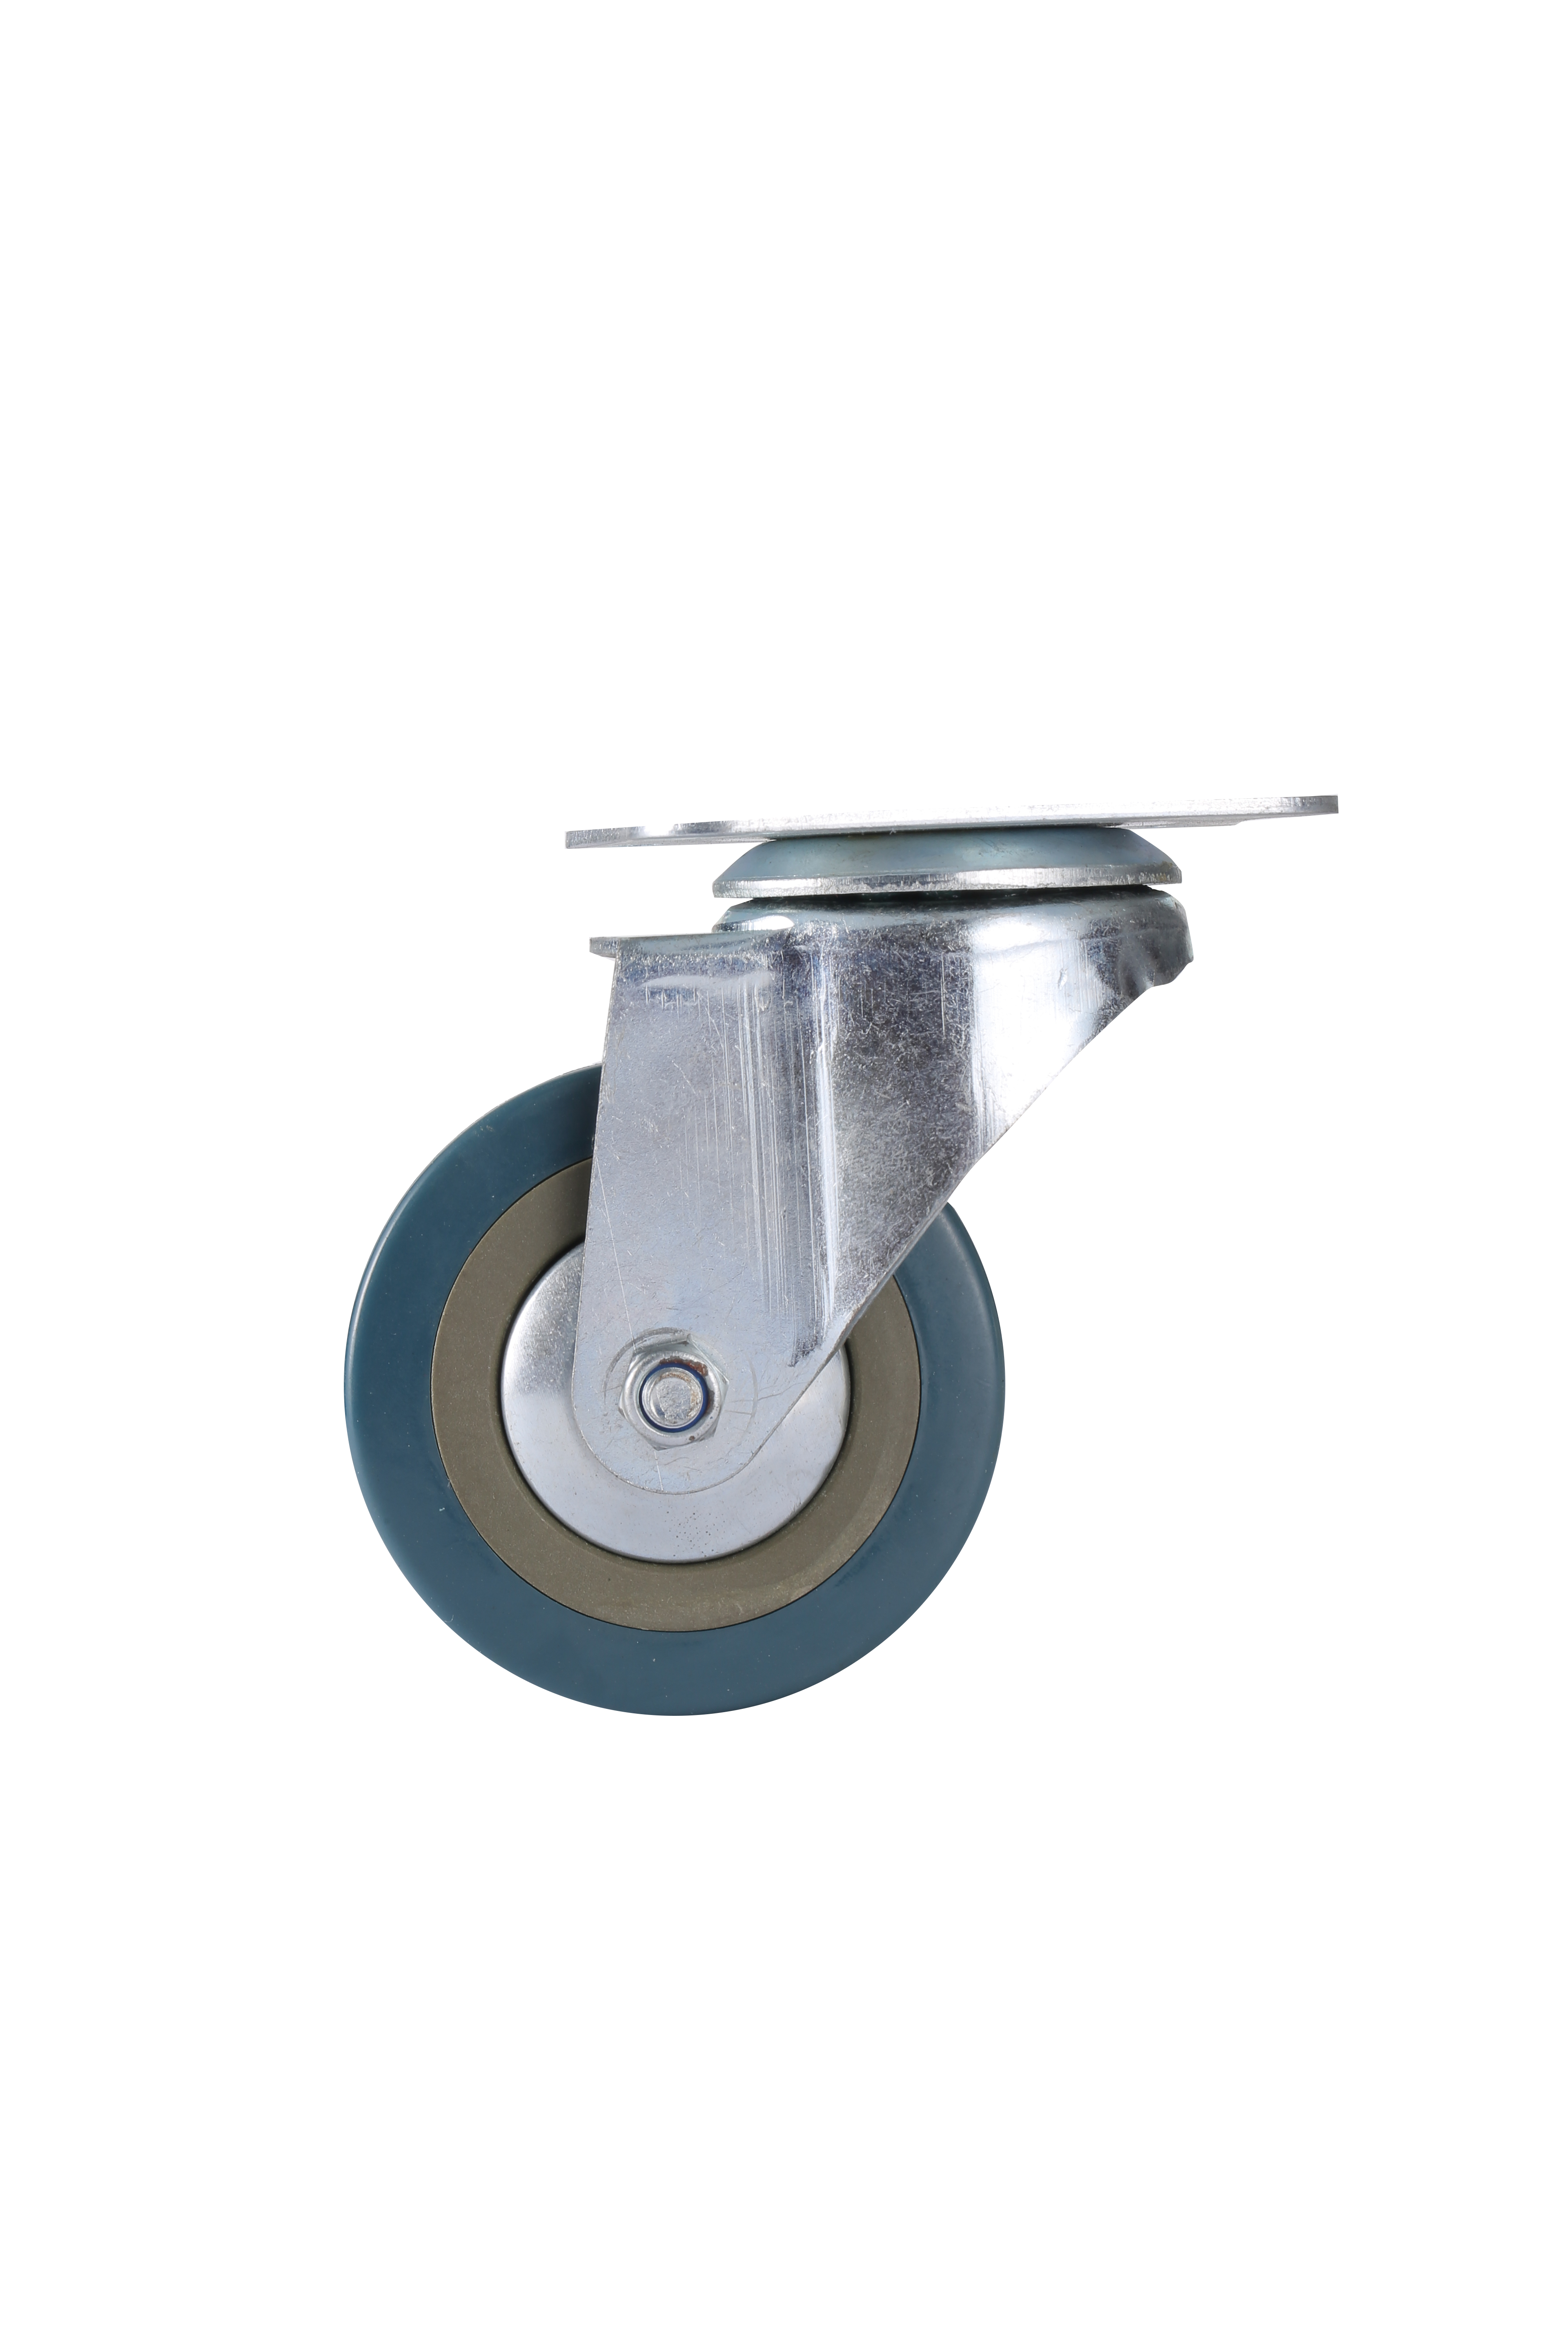 2.5'', 3'', 4'' Medium Duty PVC Caster Wheels for Shipping Container Dolly